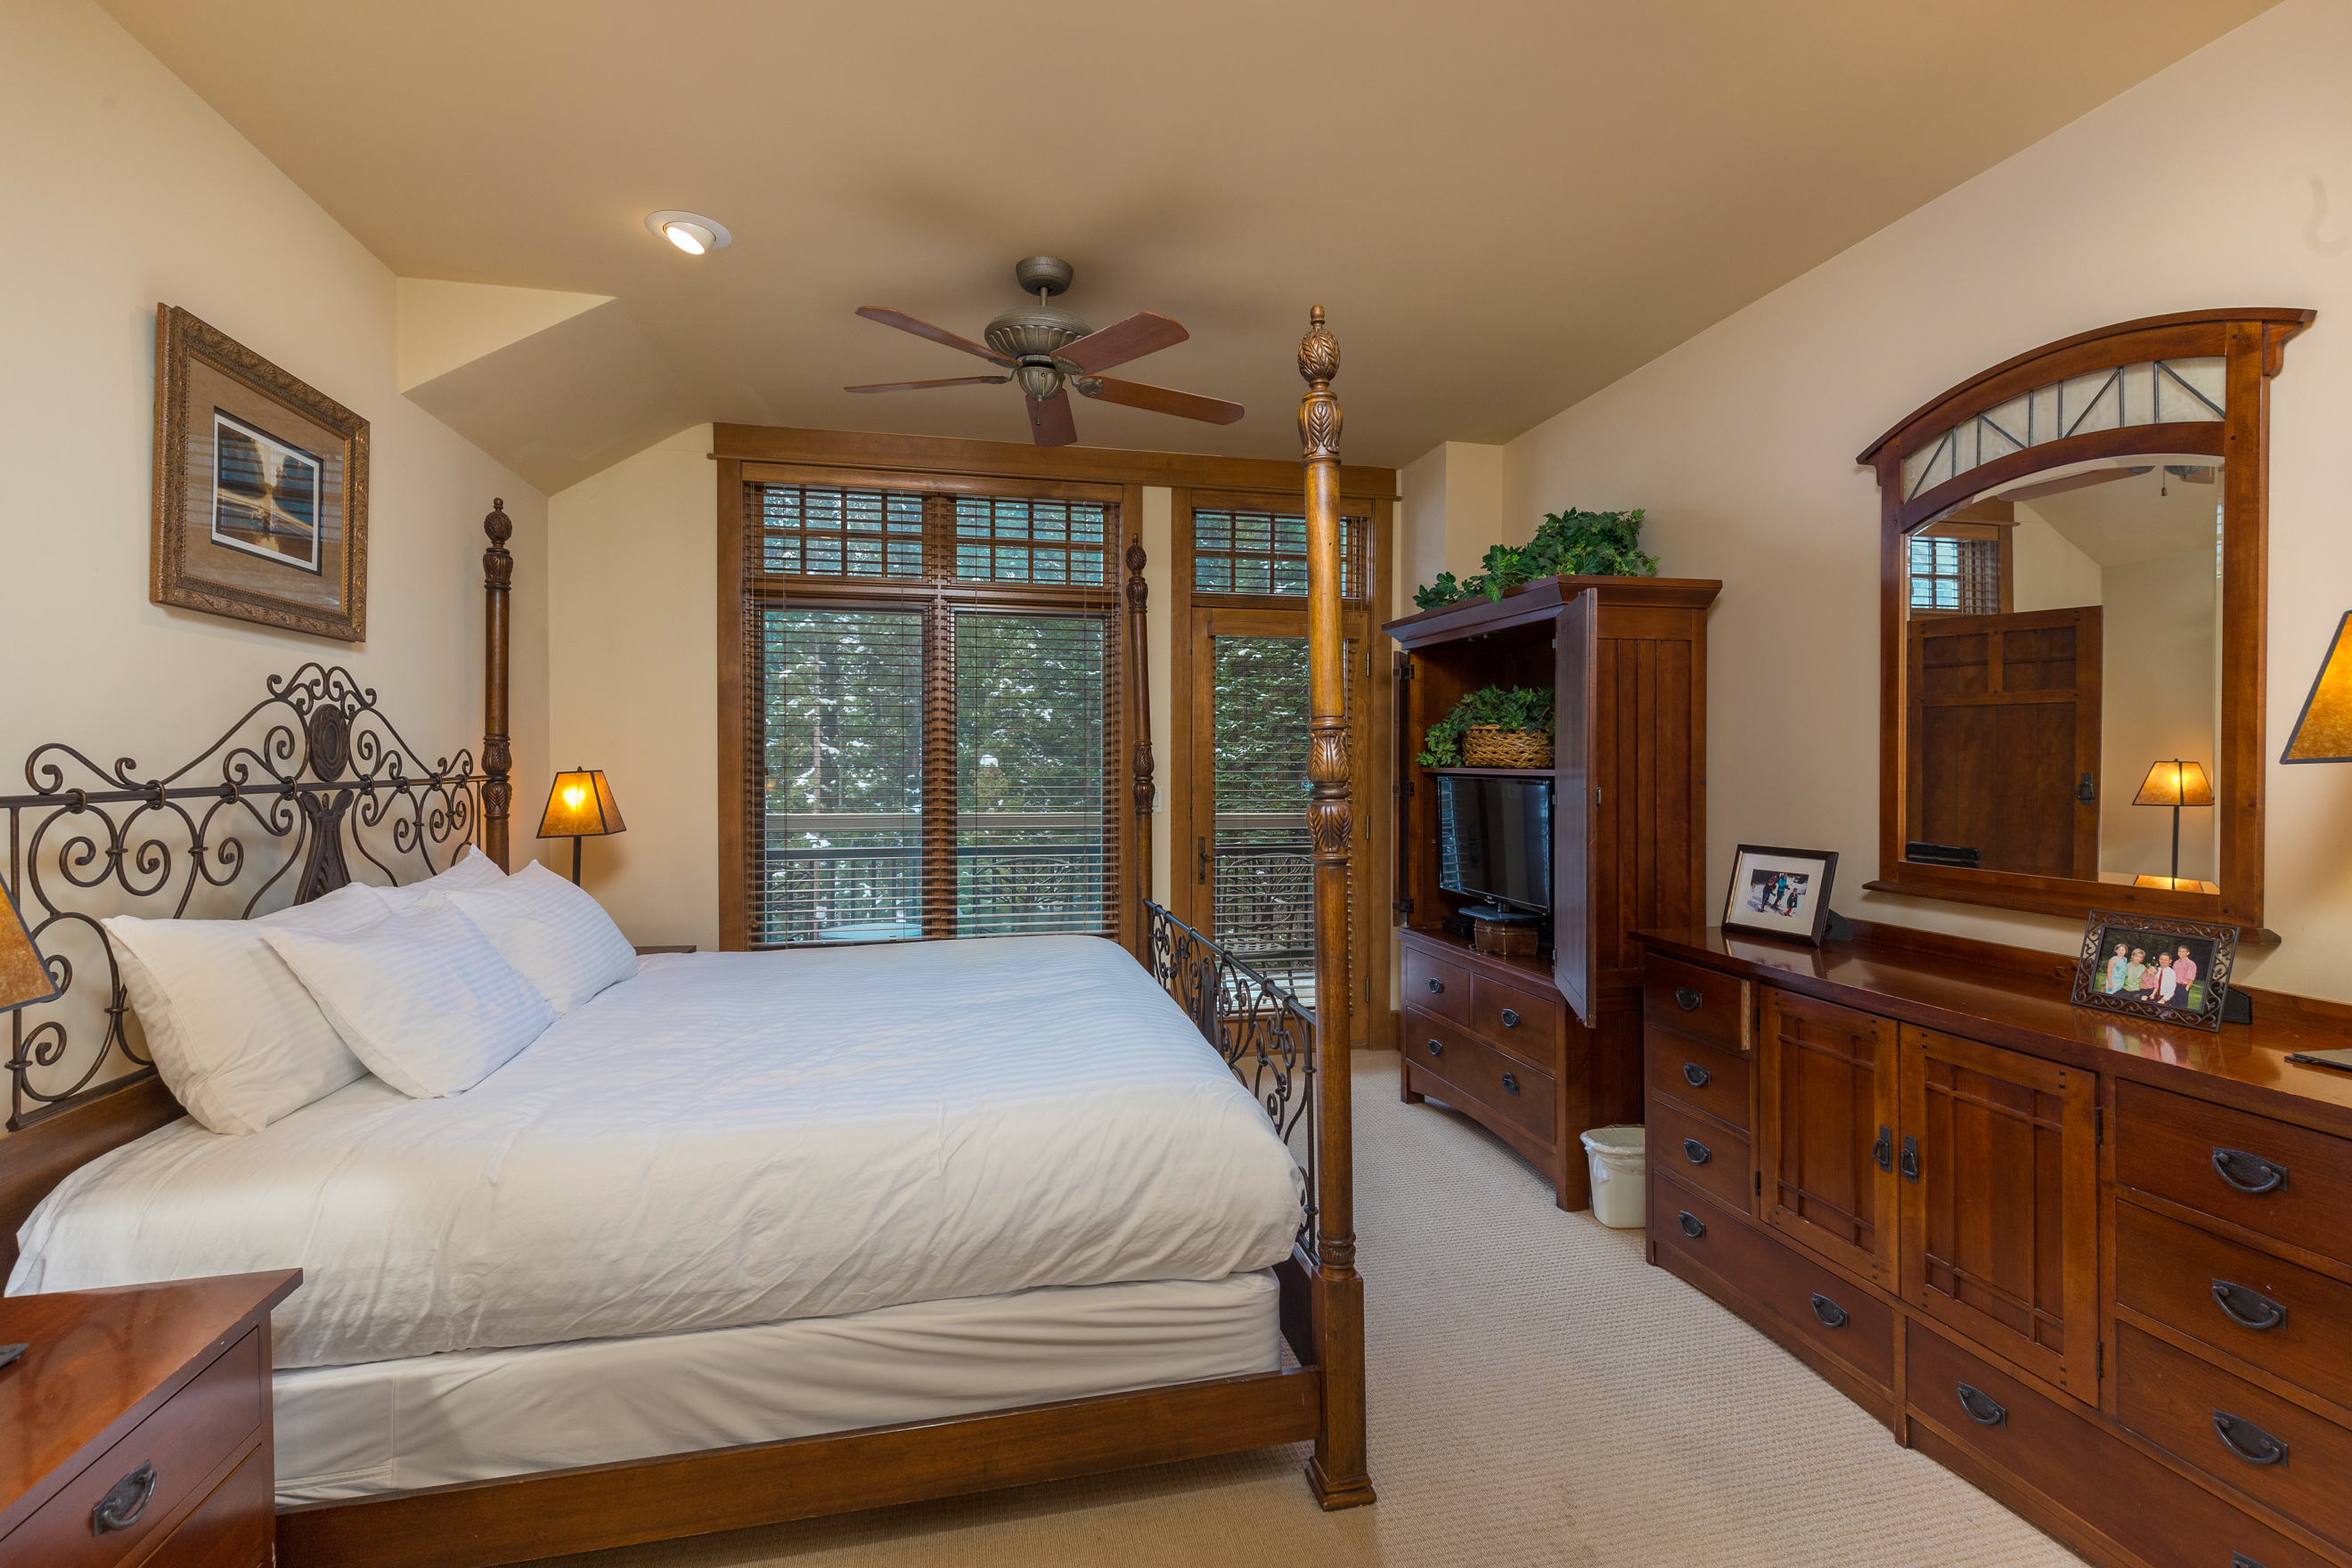 The second master bedroom features a king-sized bed with Ivory White Bedding, a flat screen TV and access to the main balcony.